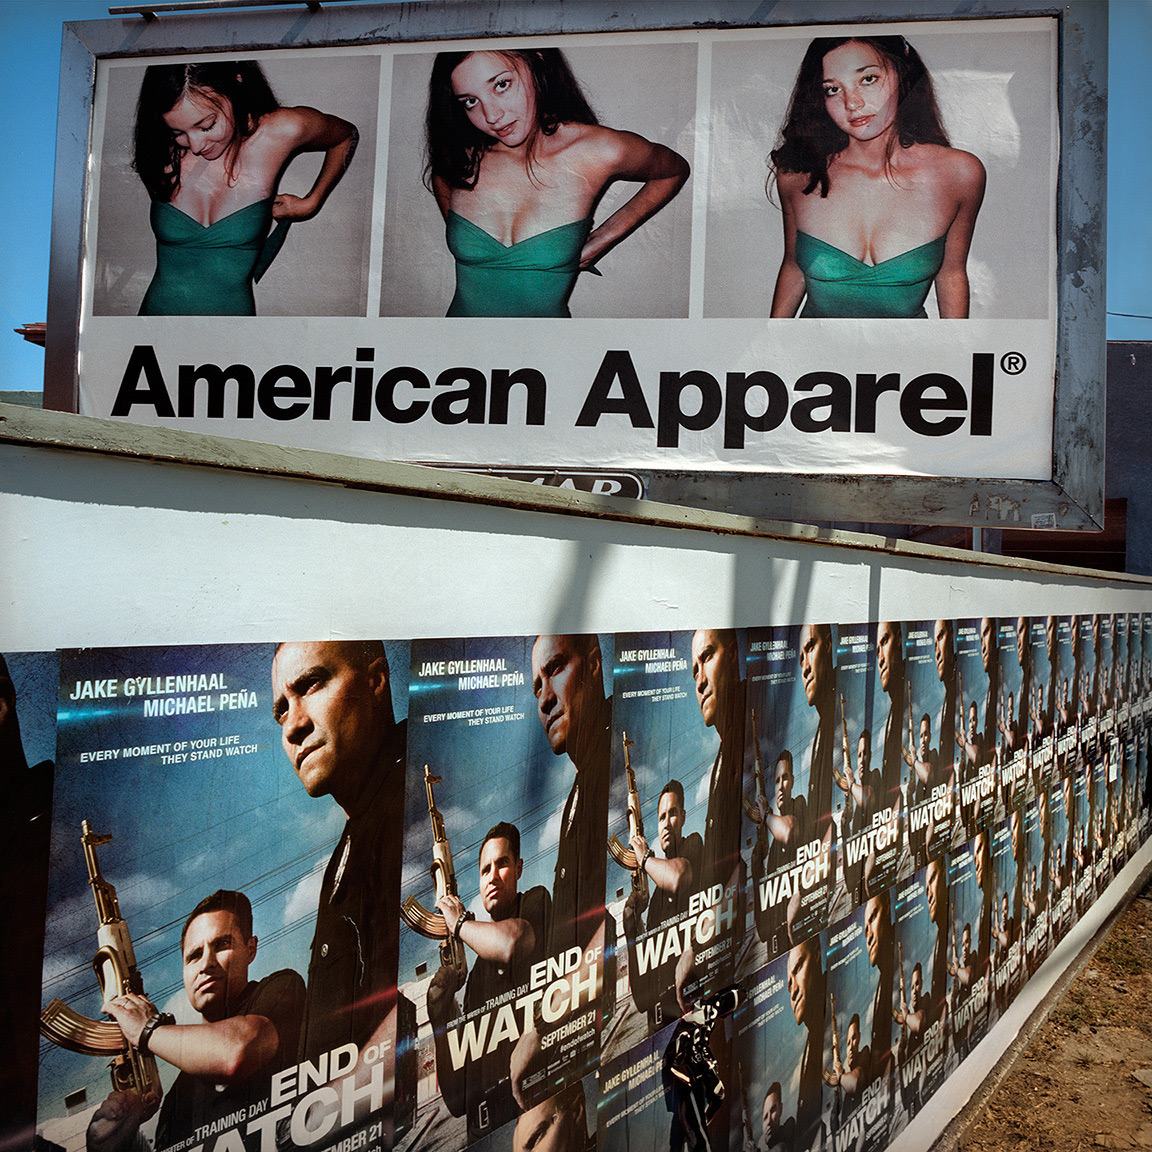 16-TheAmericanApparel-ThomasAlleman-Website-092214